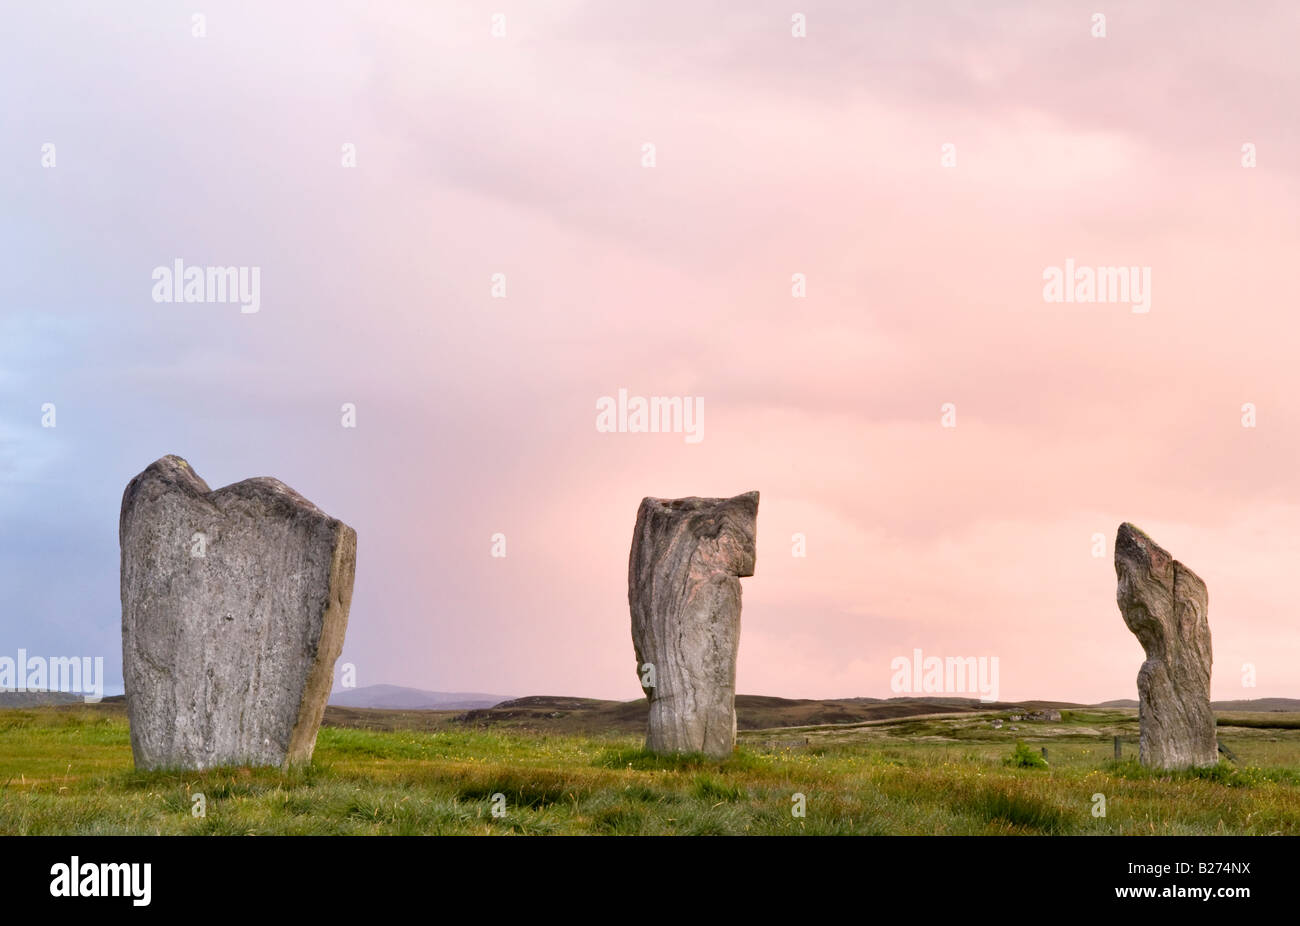 Callanish Standing Stones at dawn, Isle of Lewis, Hebrides, Scotland, UK - Stock Image